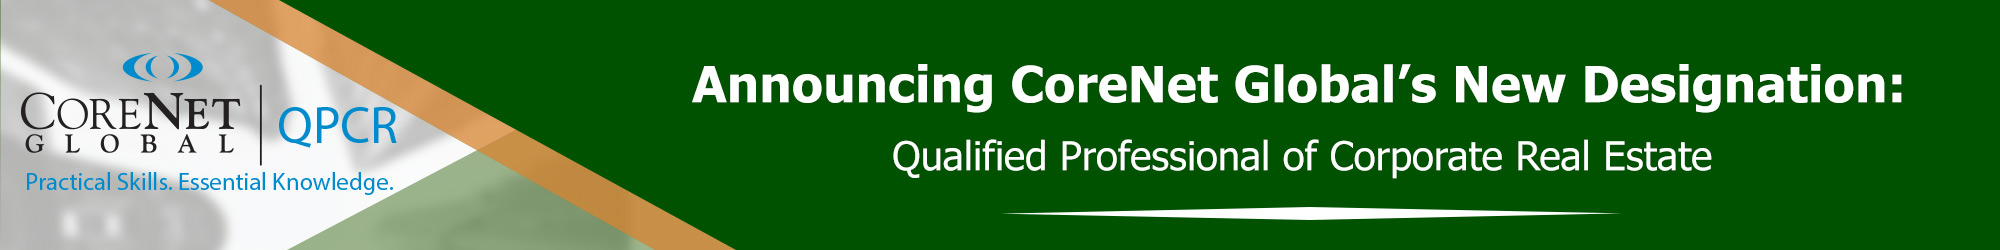 Landing page banner for QPCR Qualified Professiona